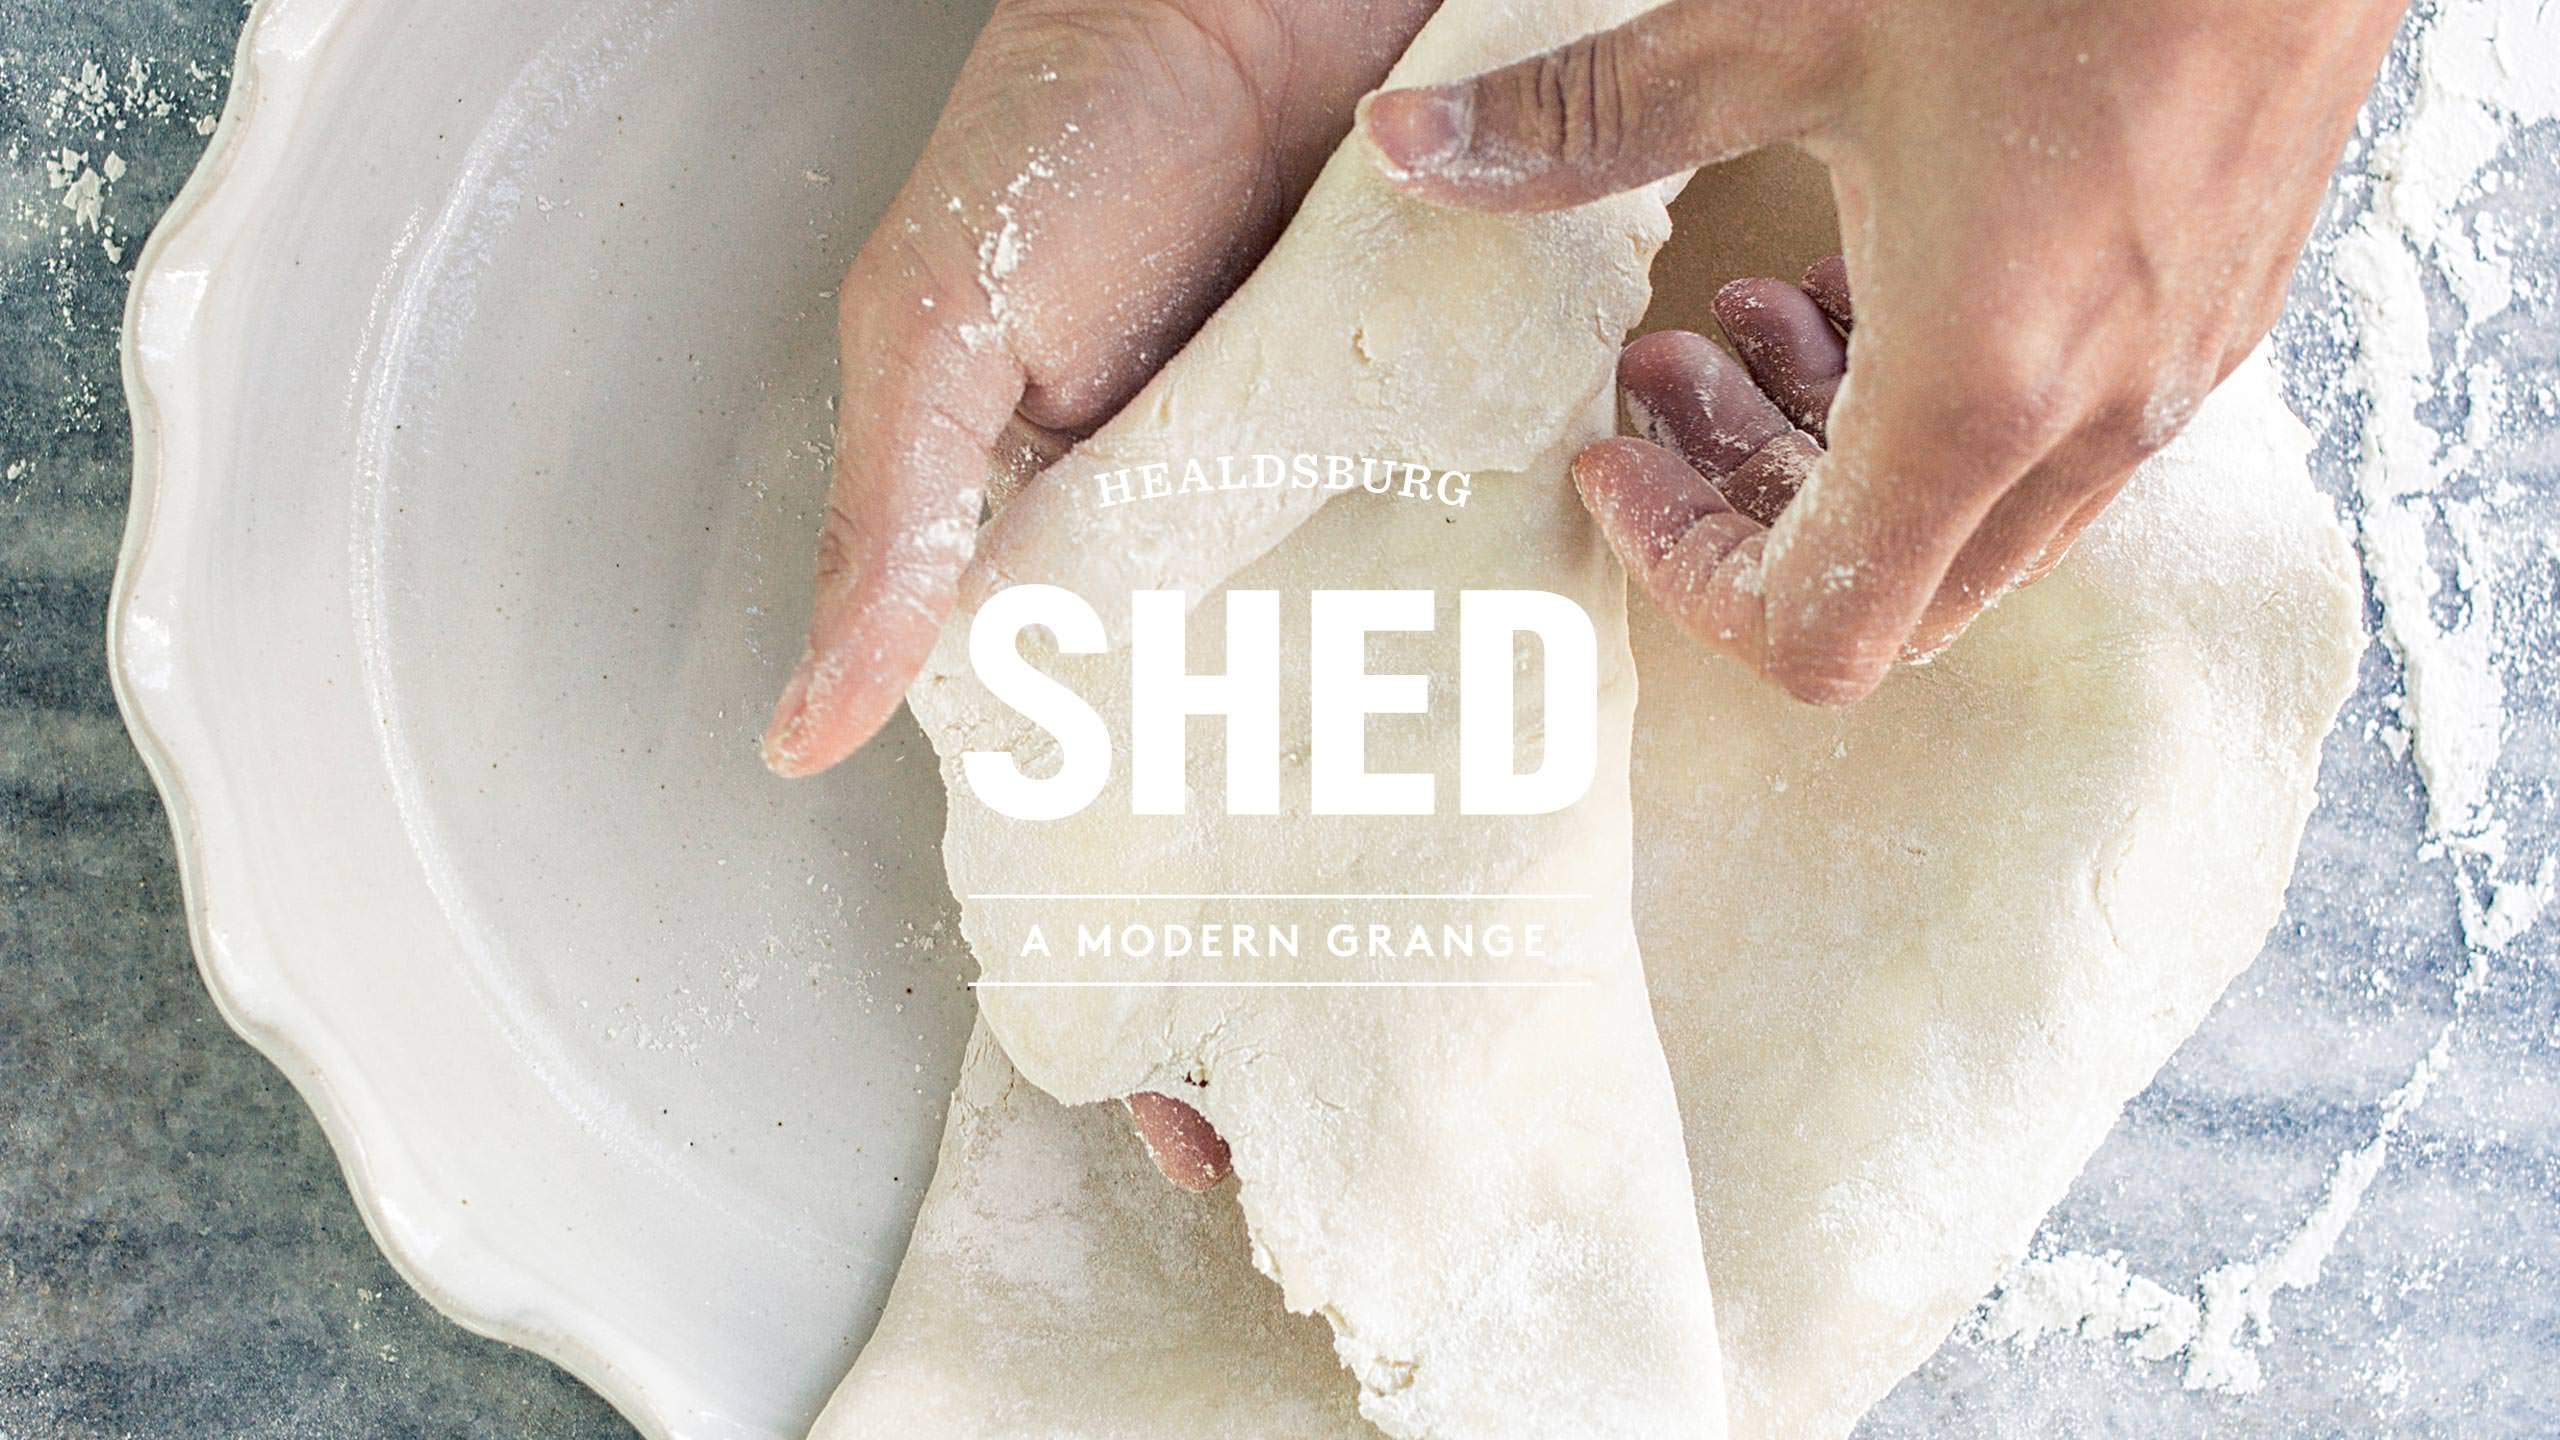 SHED Identity with image of Pie Making